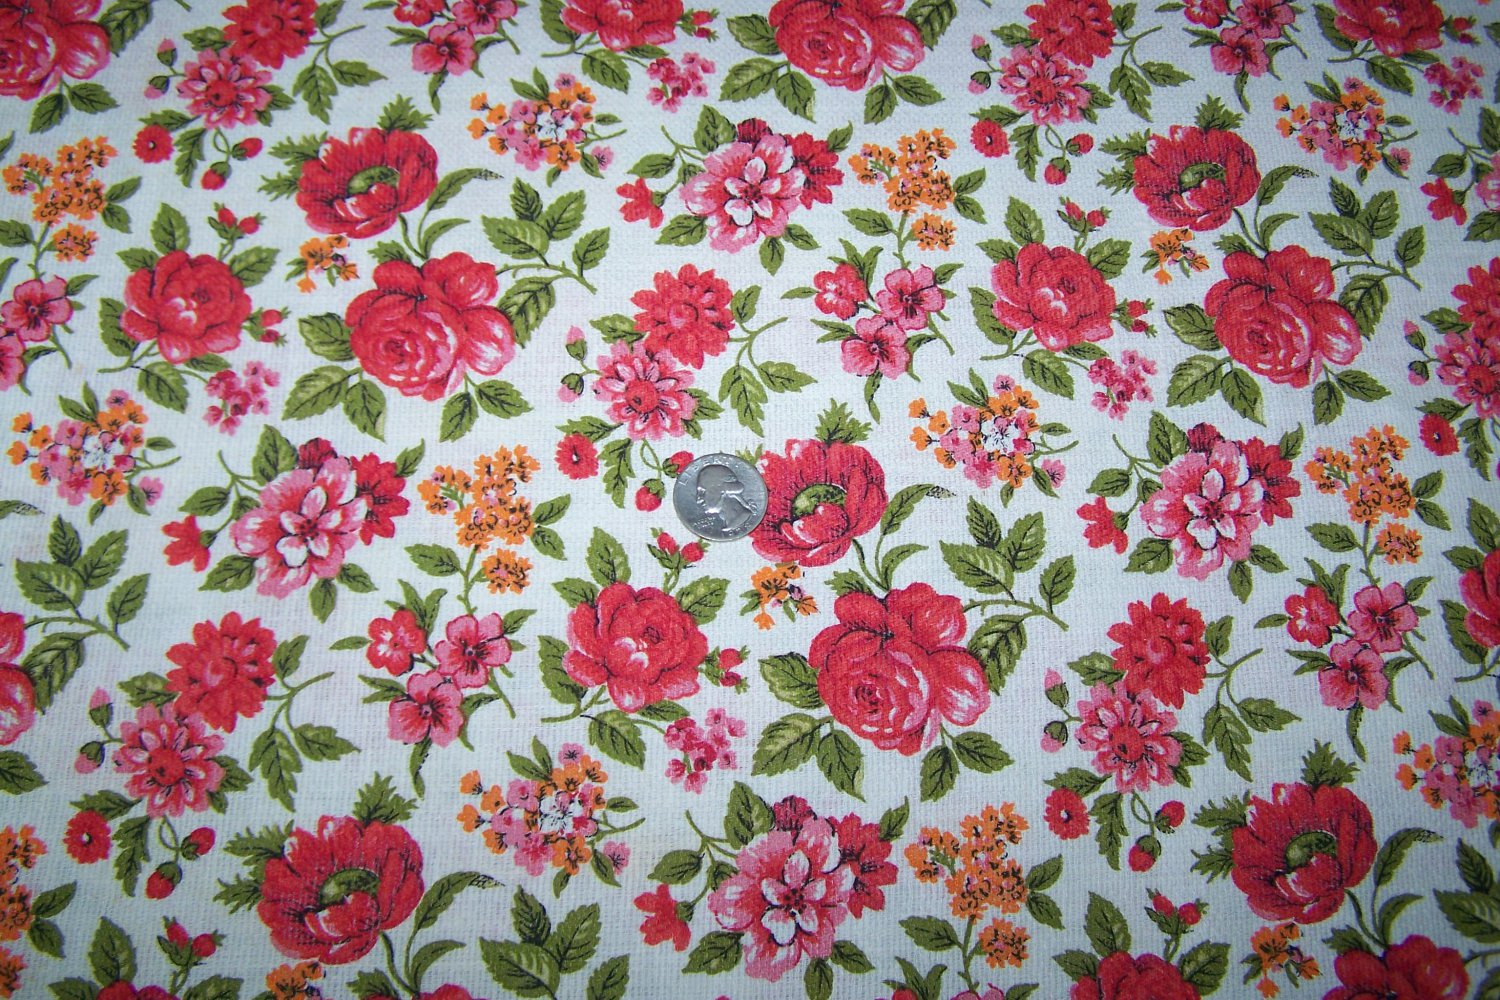 Vintage Barkcloth Cotton Fabric Floral Roses Flowers By